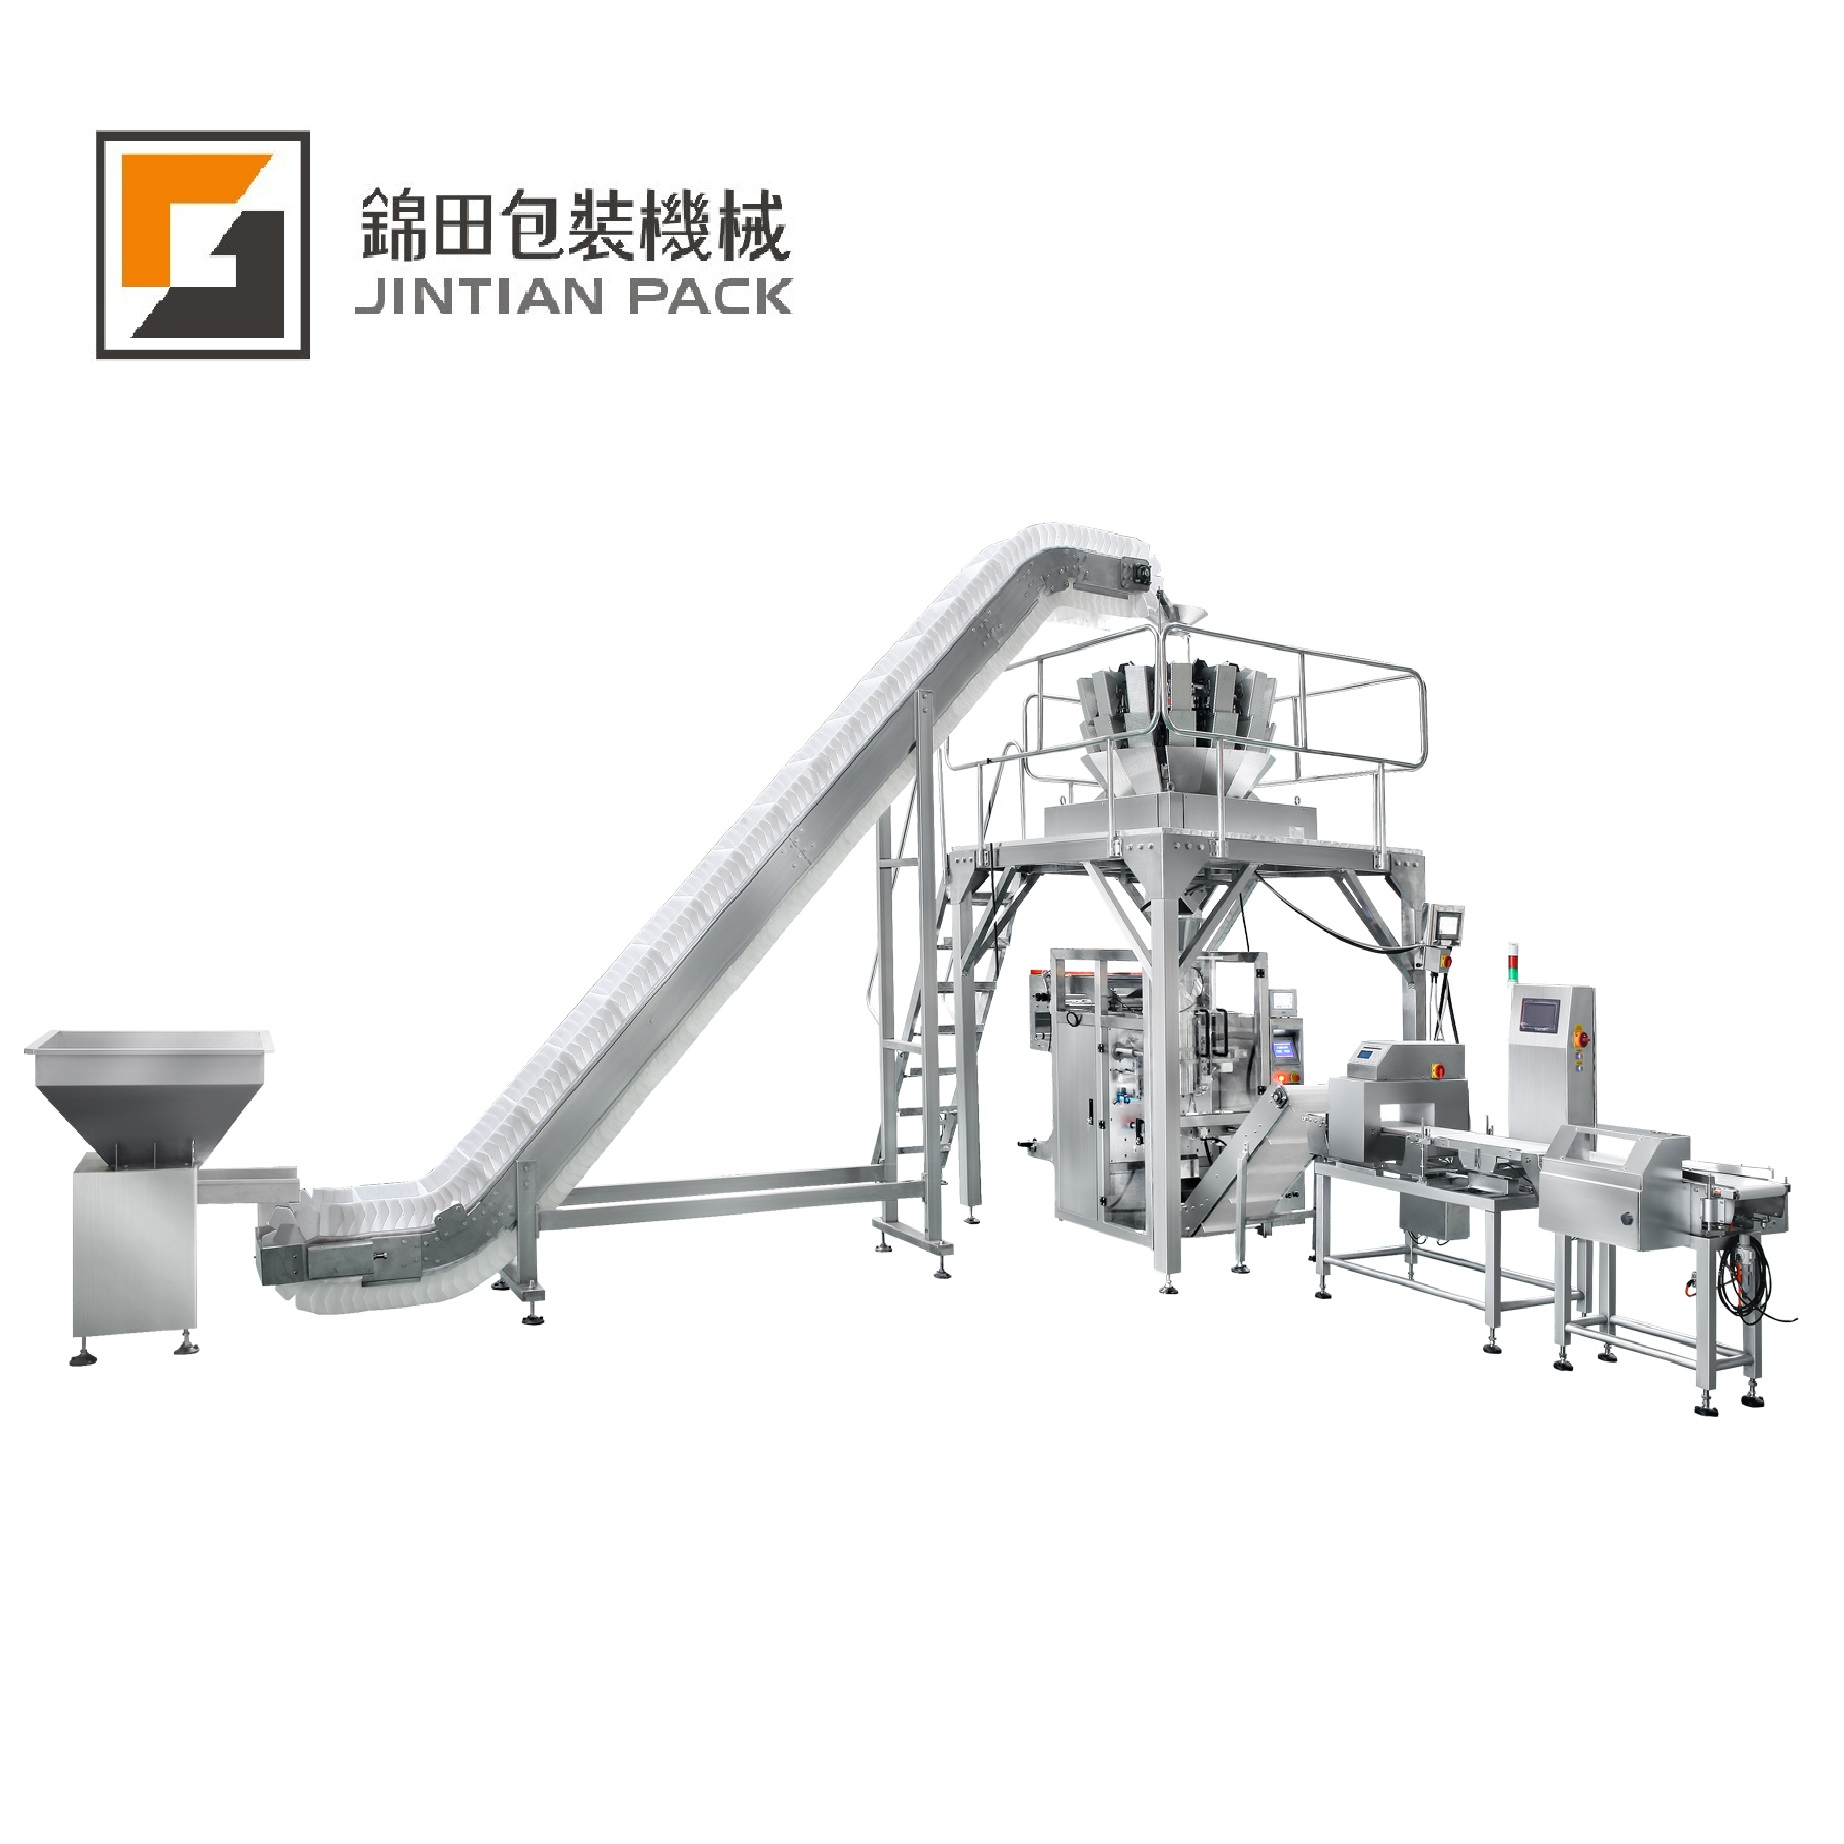 JT-520W Large packing machine with multihead weigher system